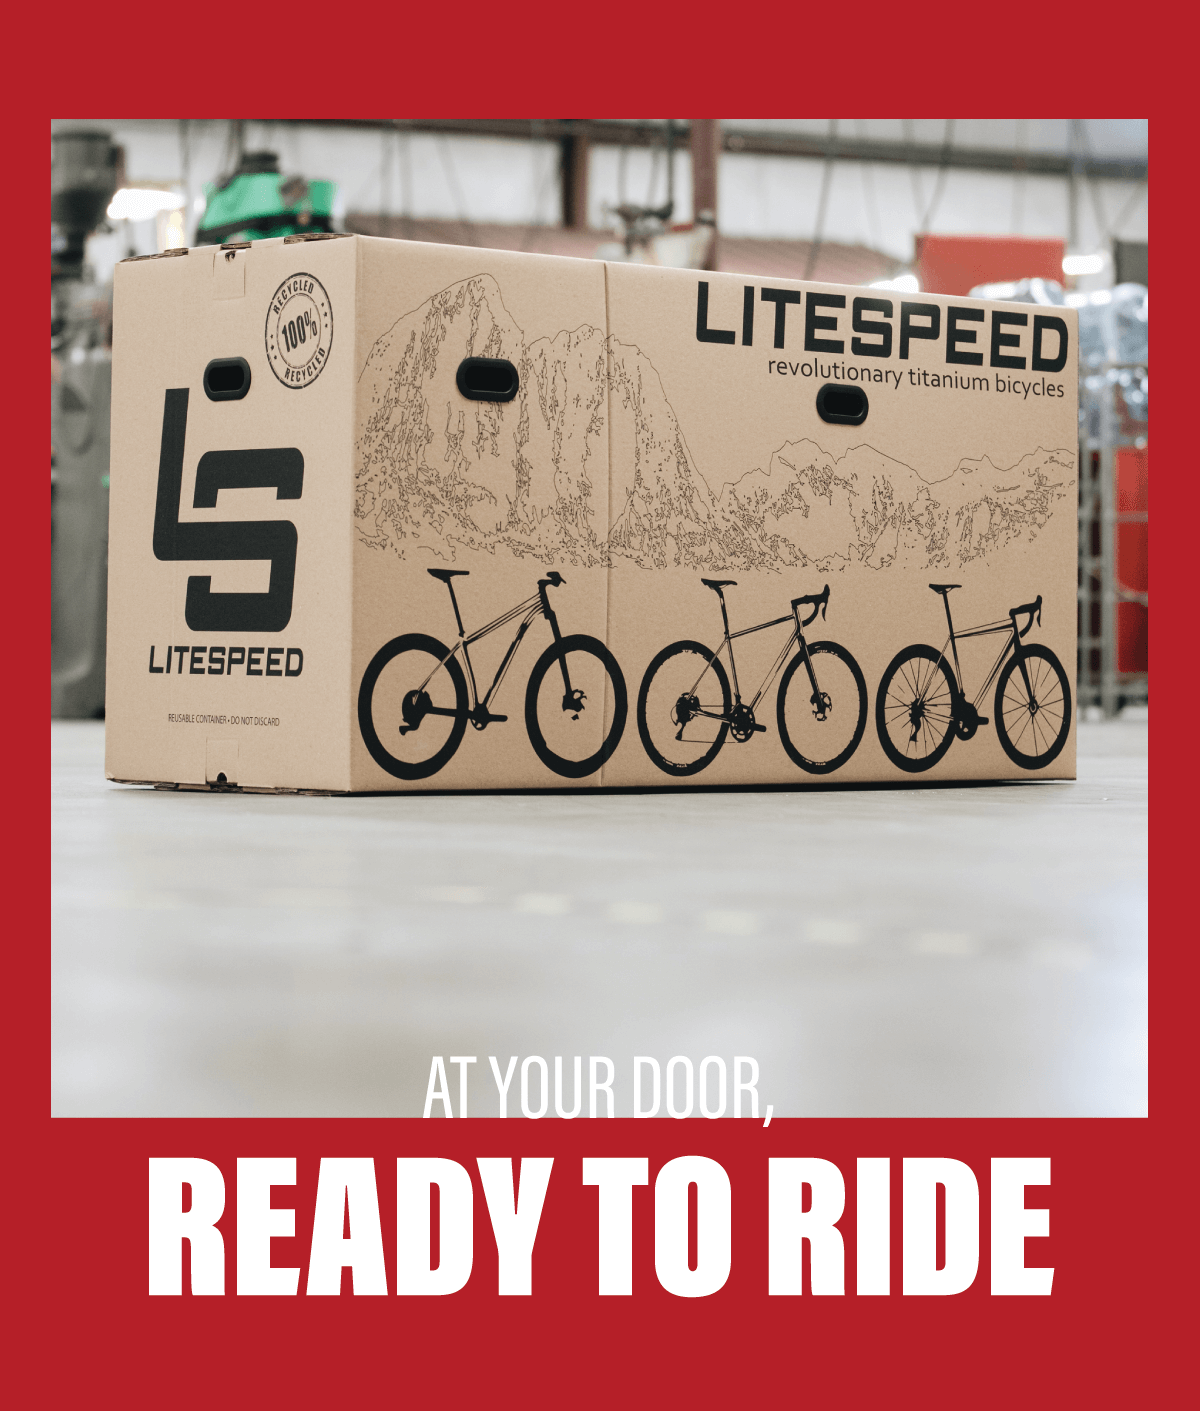 At your door, ready to ride. Order your Litespeed online and we''ll ship it to your door.